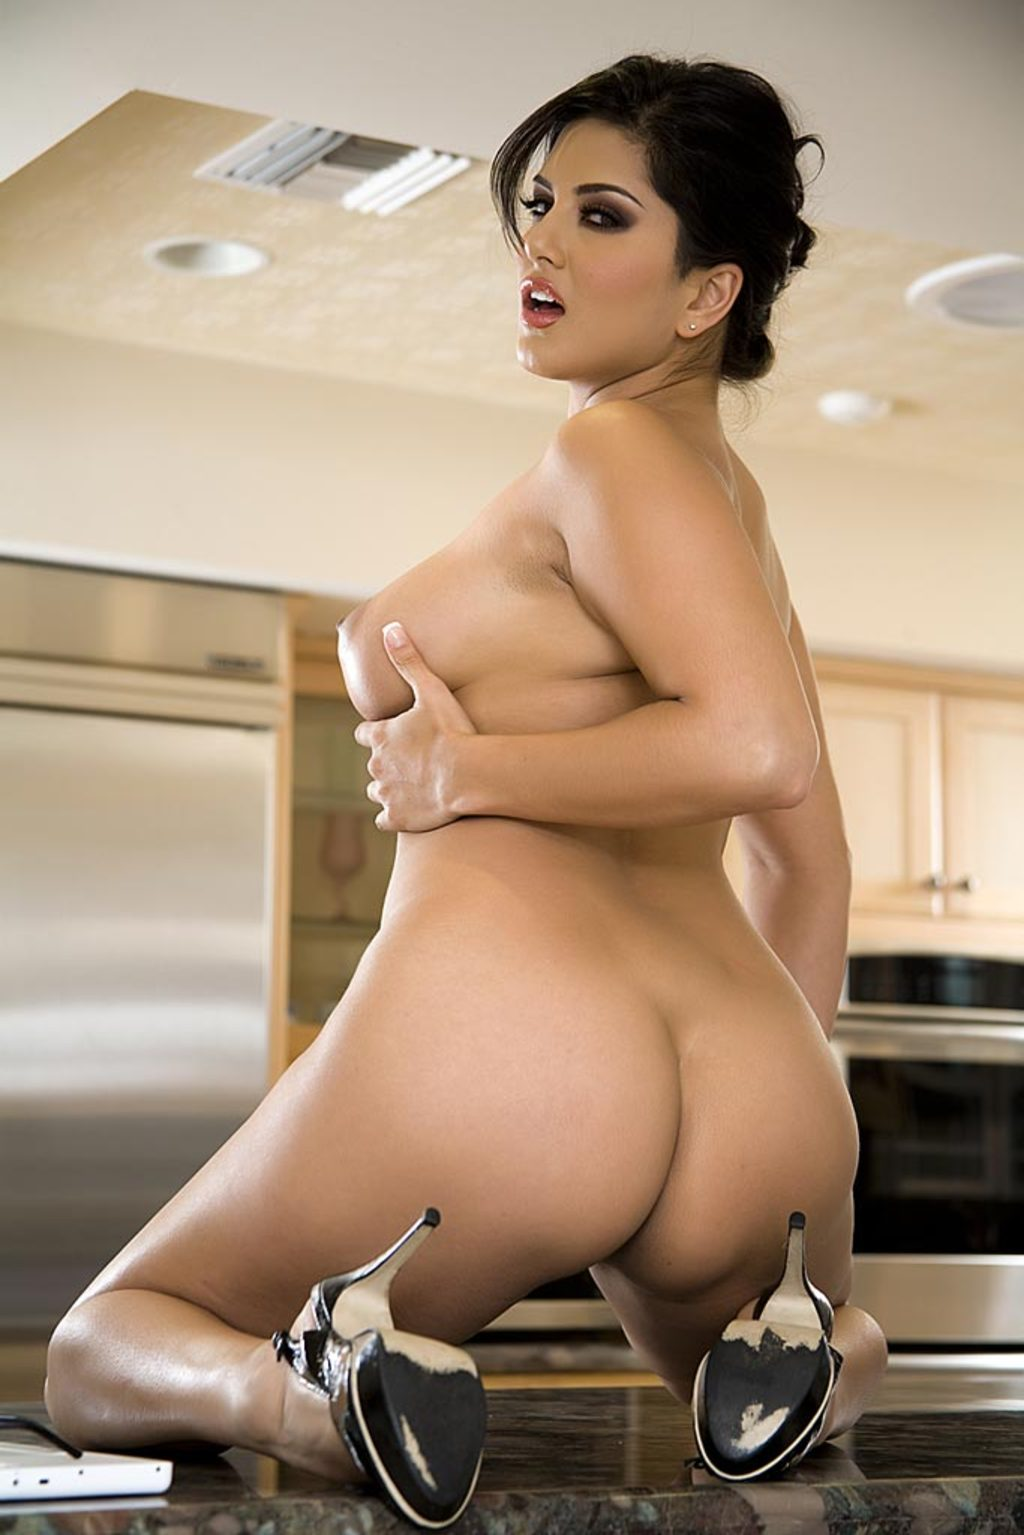 Sunny leone strips with a banana